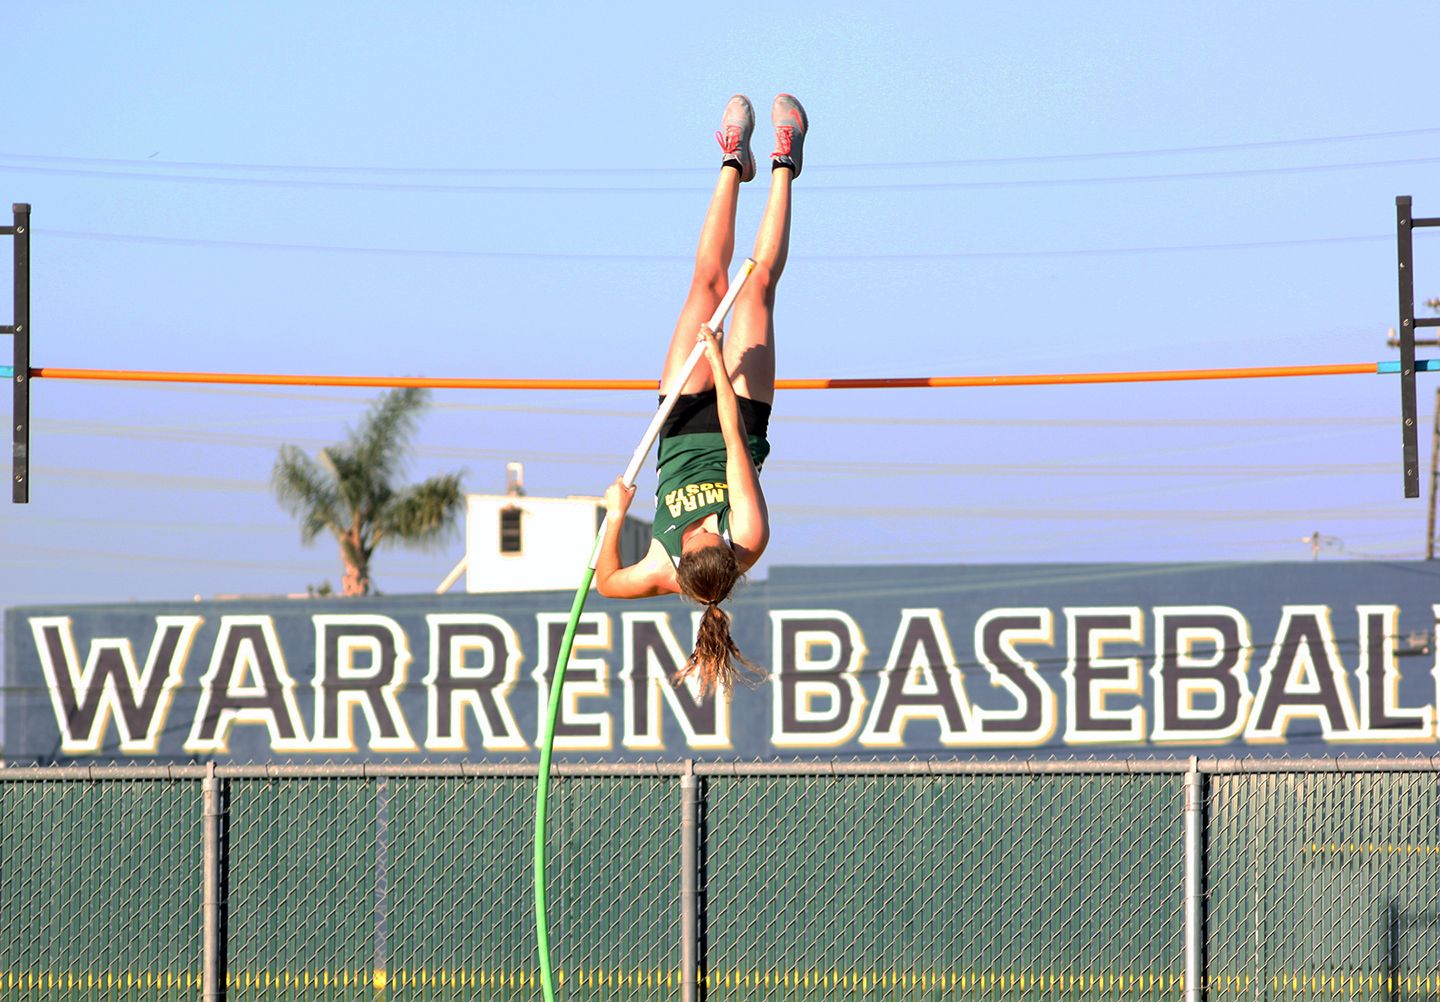 Clean Sweep For Mira Costa High School Pole Vault Pole Vault Clean Sweep High School